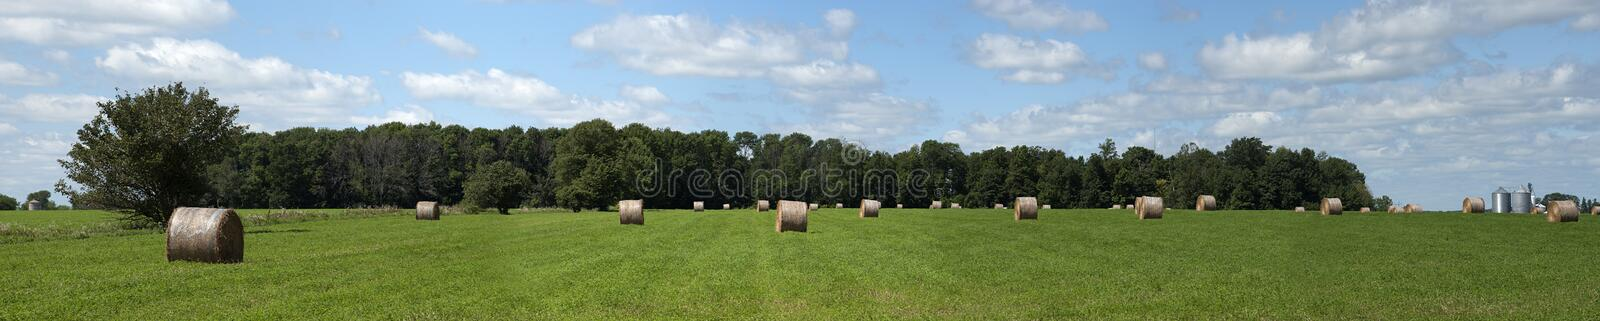 Download Hay Field Bales Farm Land Panorama, Banner Stock Photo - Image: 15611660